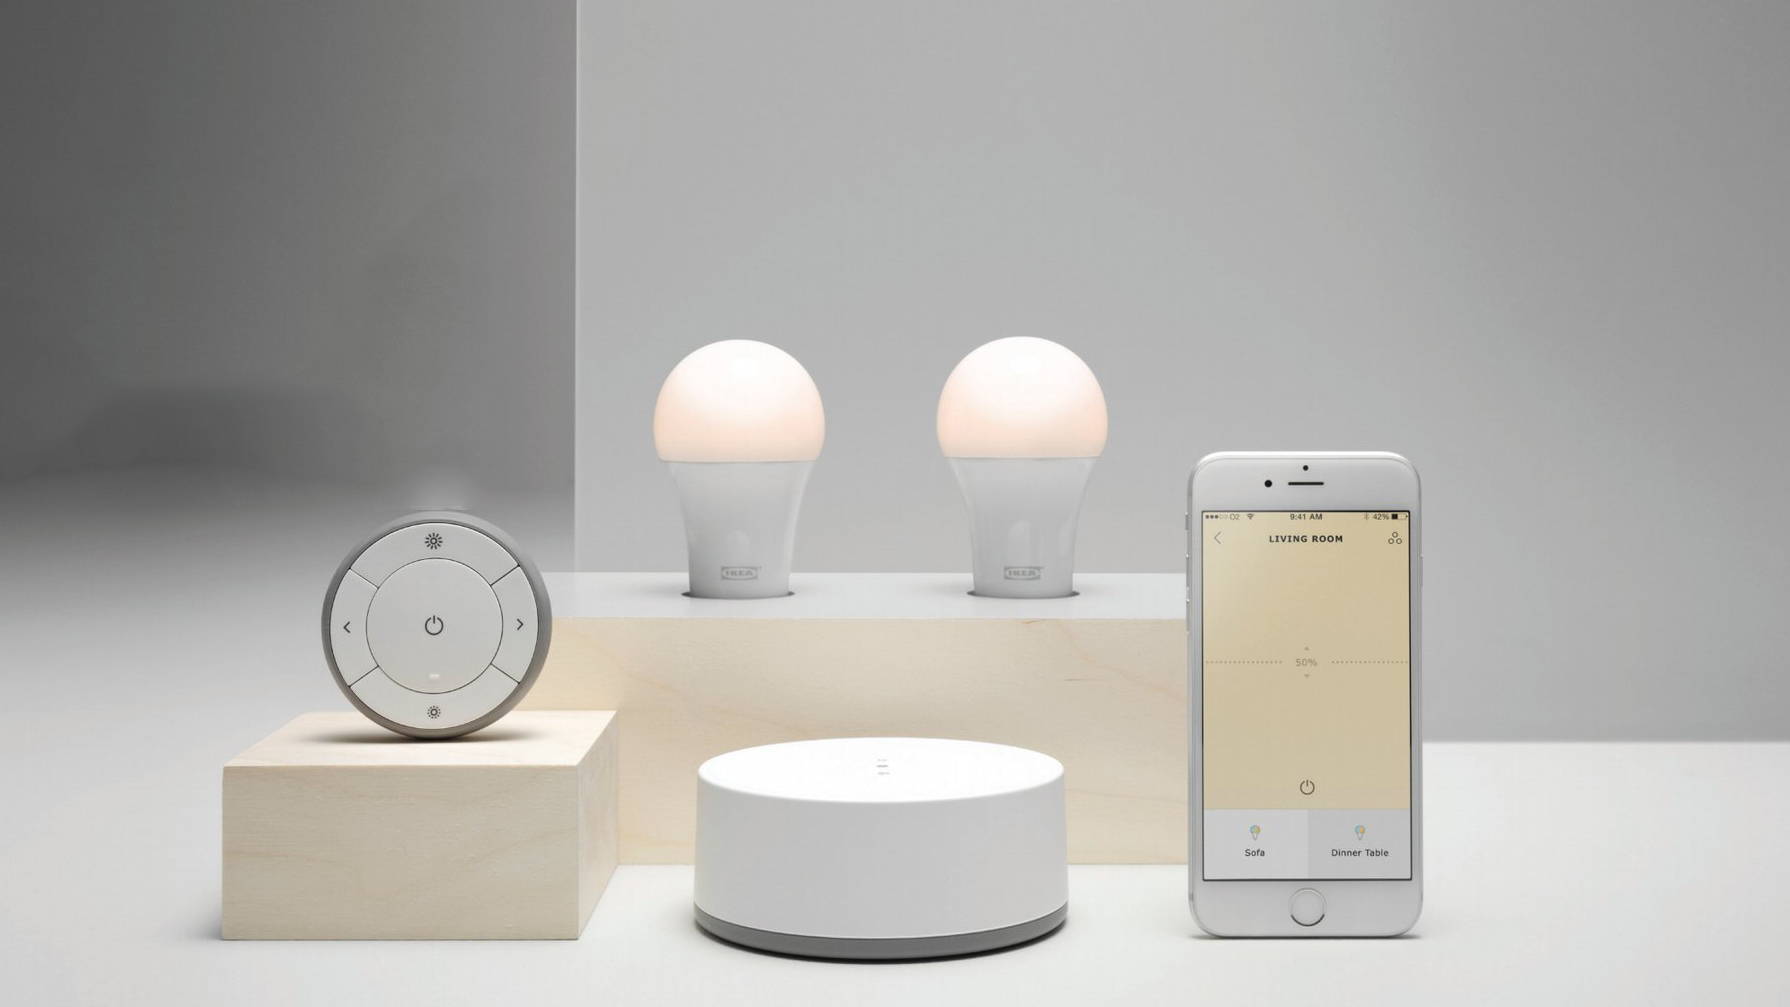 mean smarter new lighting technology what smart solutions light it does